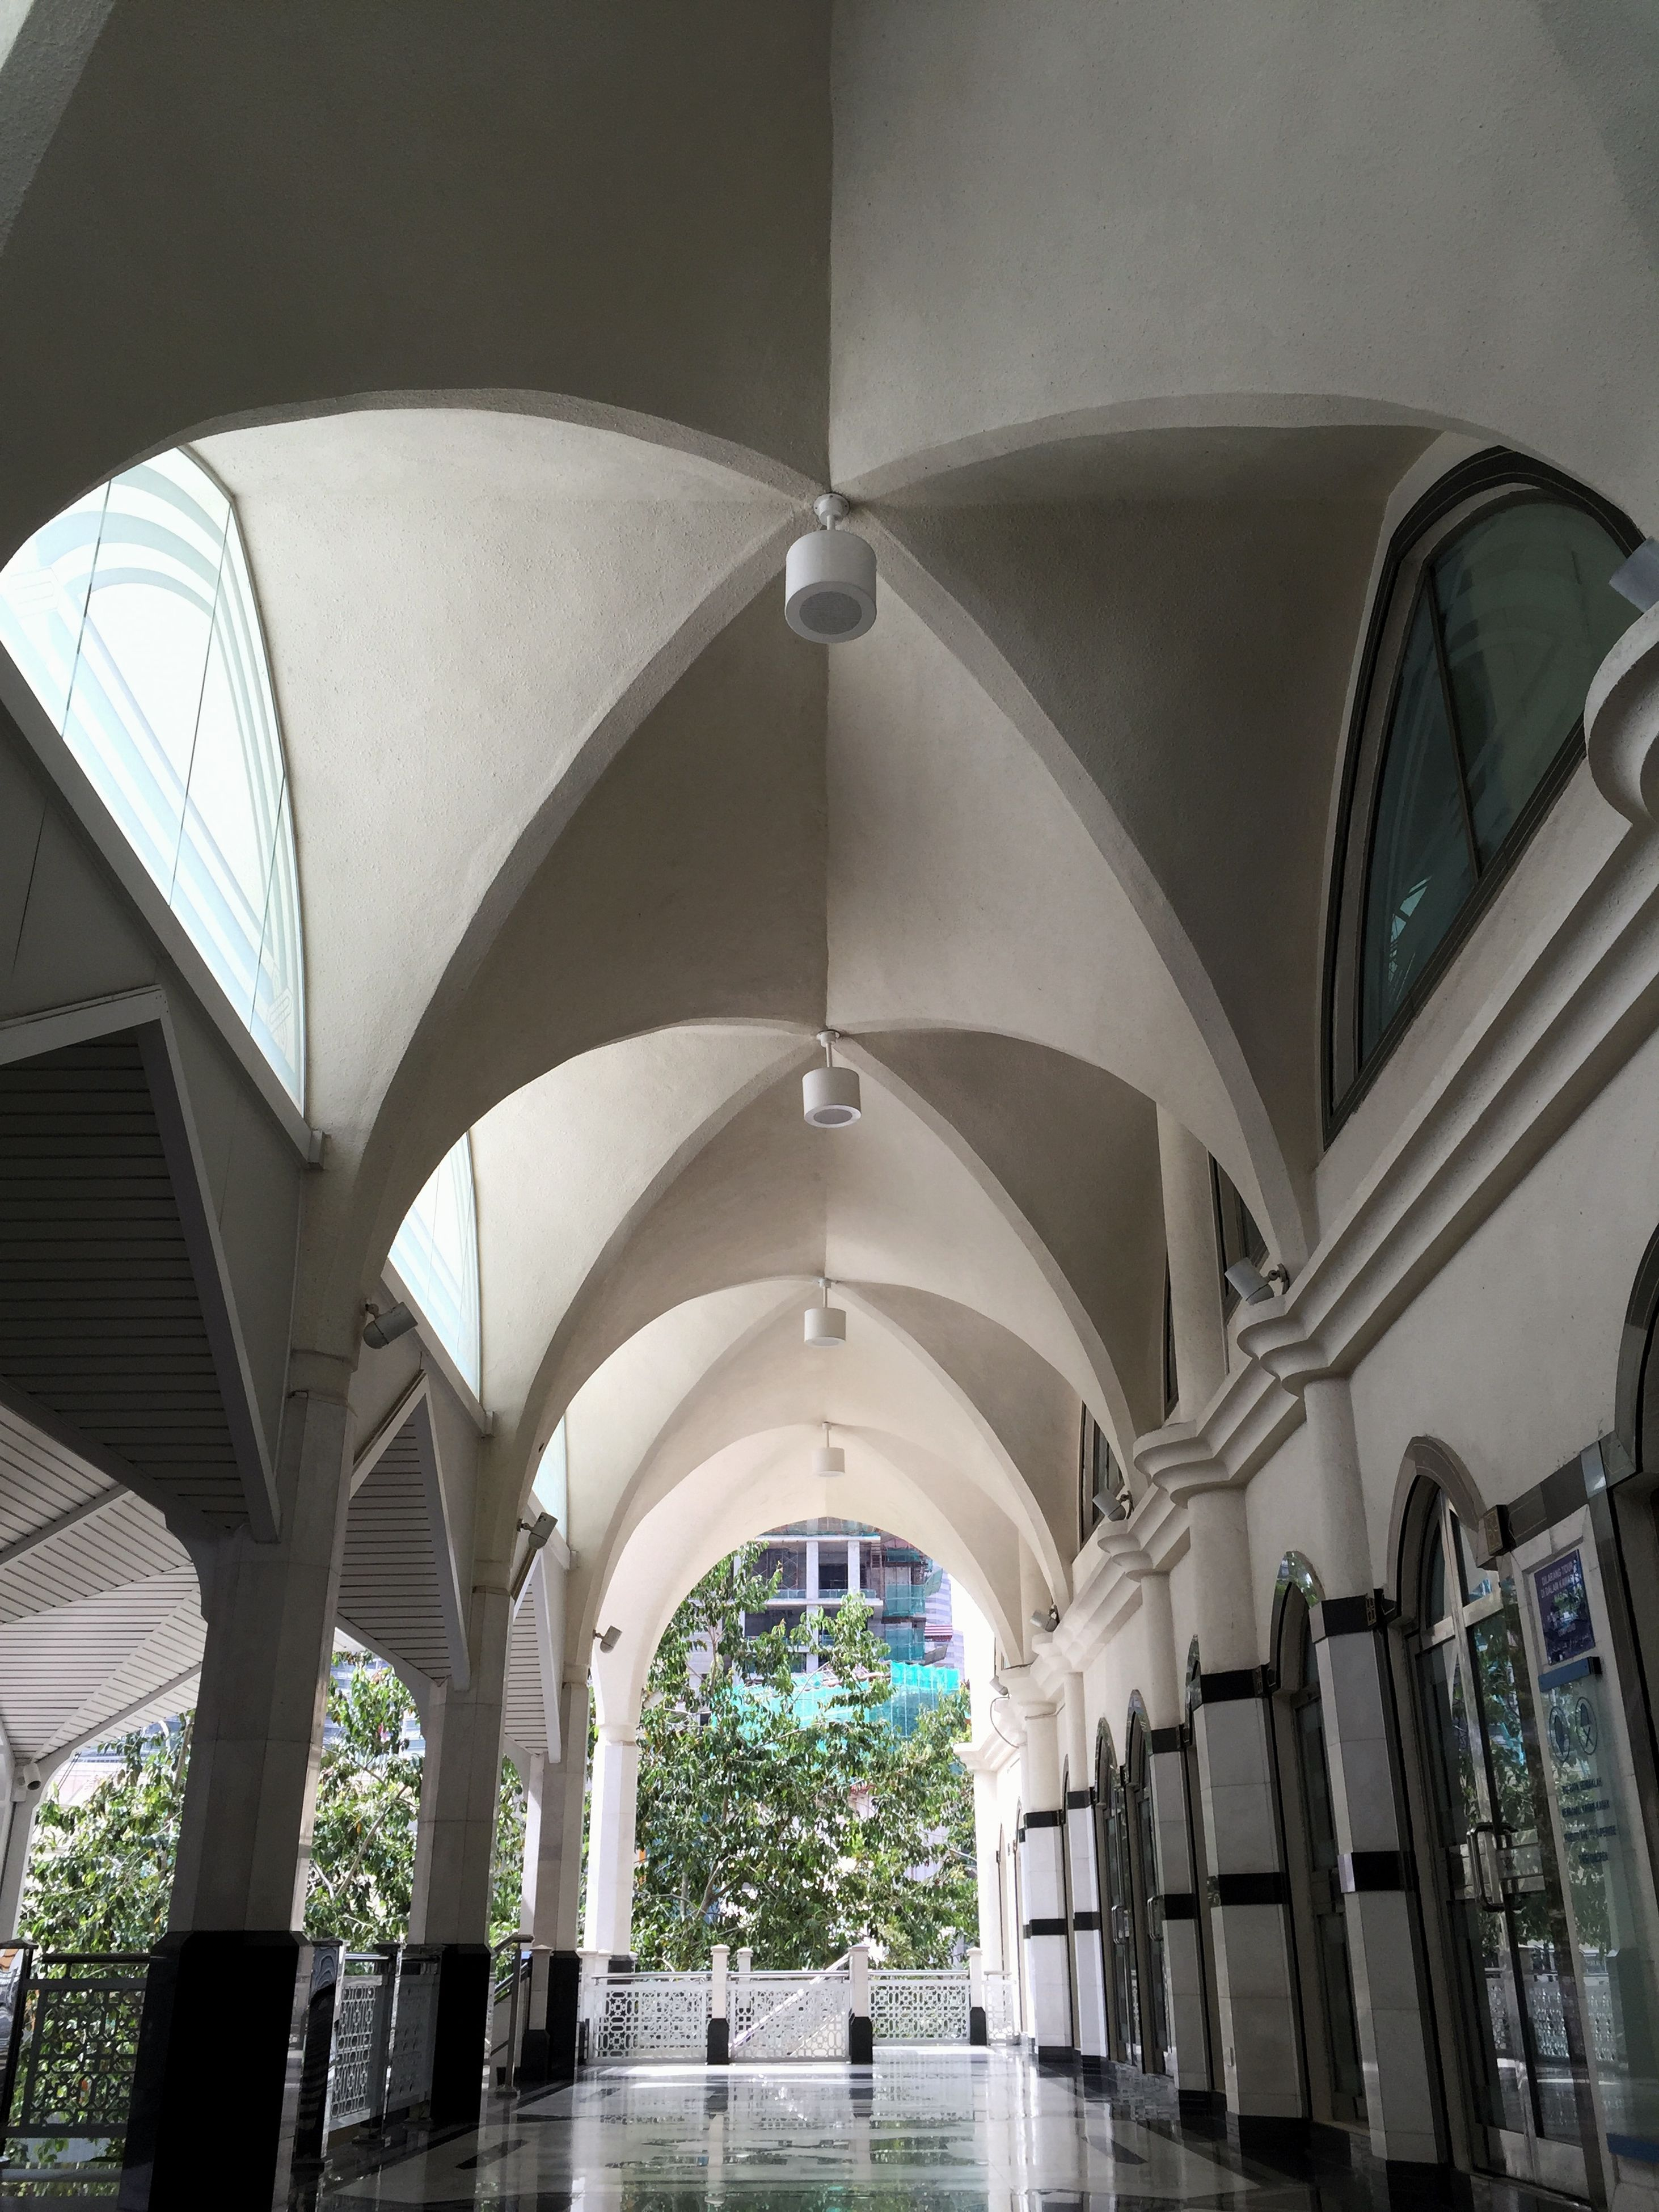 architecture, built structure, arch, building exterior, low angle view, indoors, architectural feature, ceiling, modern, architectural column, building, travel destinations, design, window, famous place, city, day, no people, dome, pattern